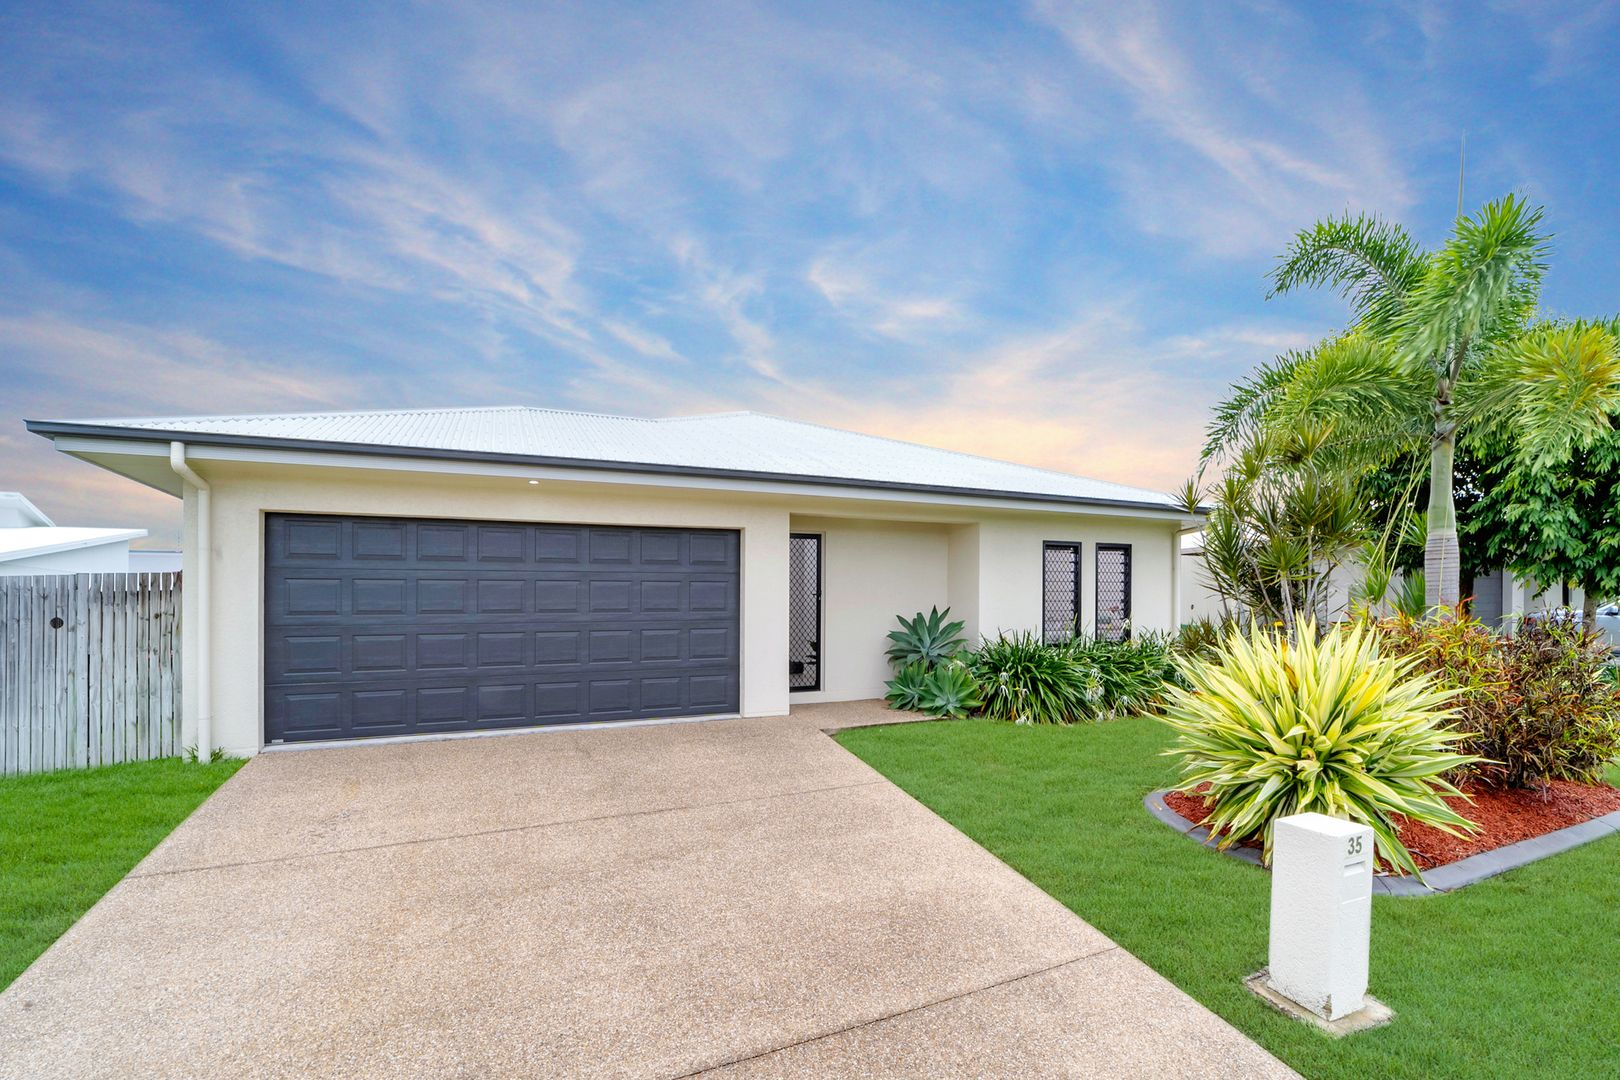 35 Brush Cherry Street, Mount Low QLD 4818, Image 0